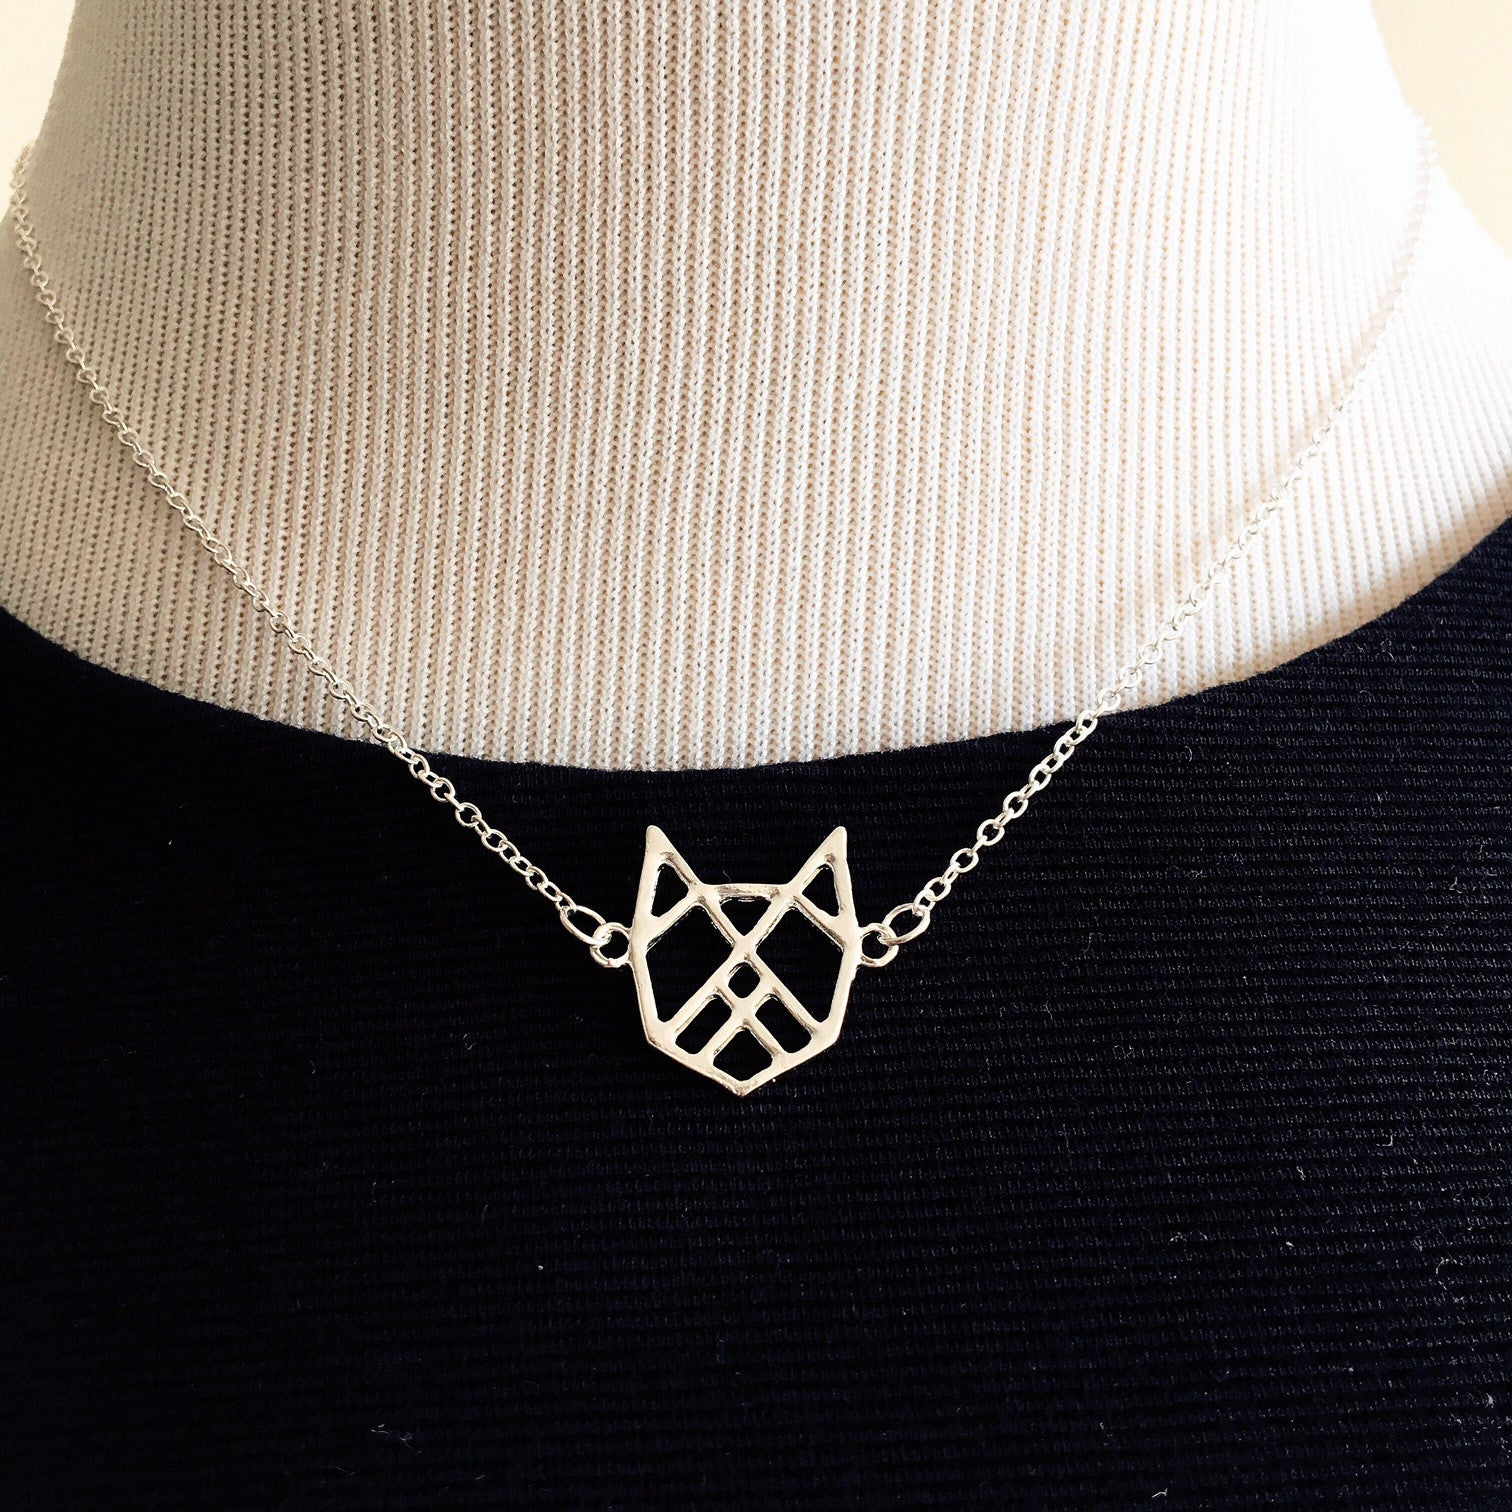 SILVER BELLE Origami Necklace - Allthingsfrenchie LLC